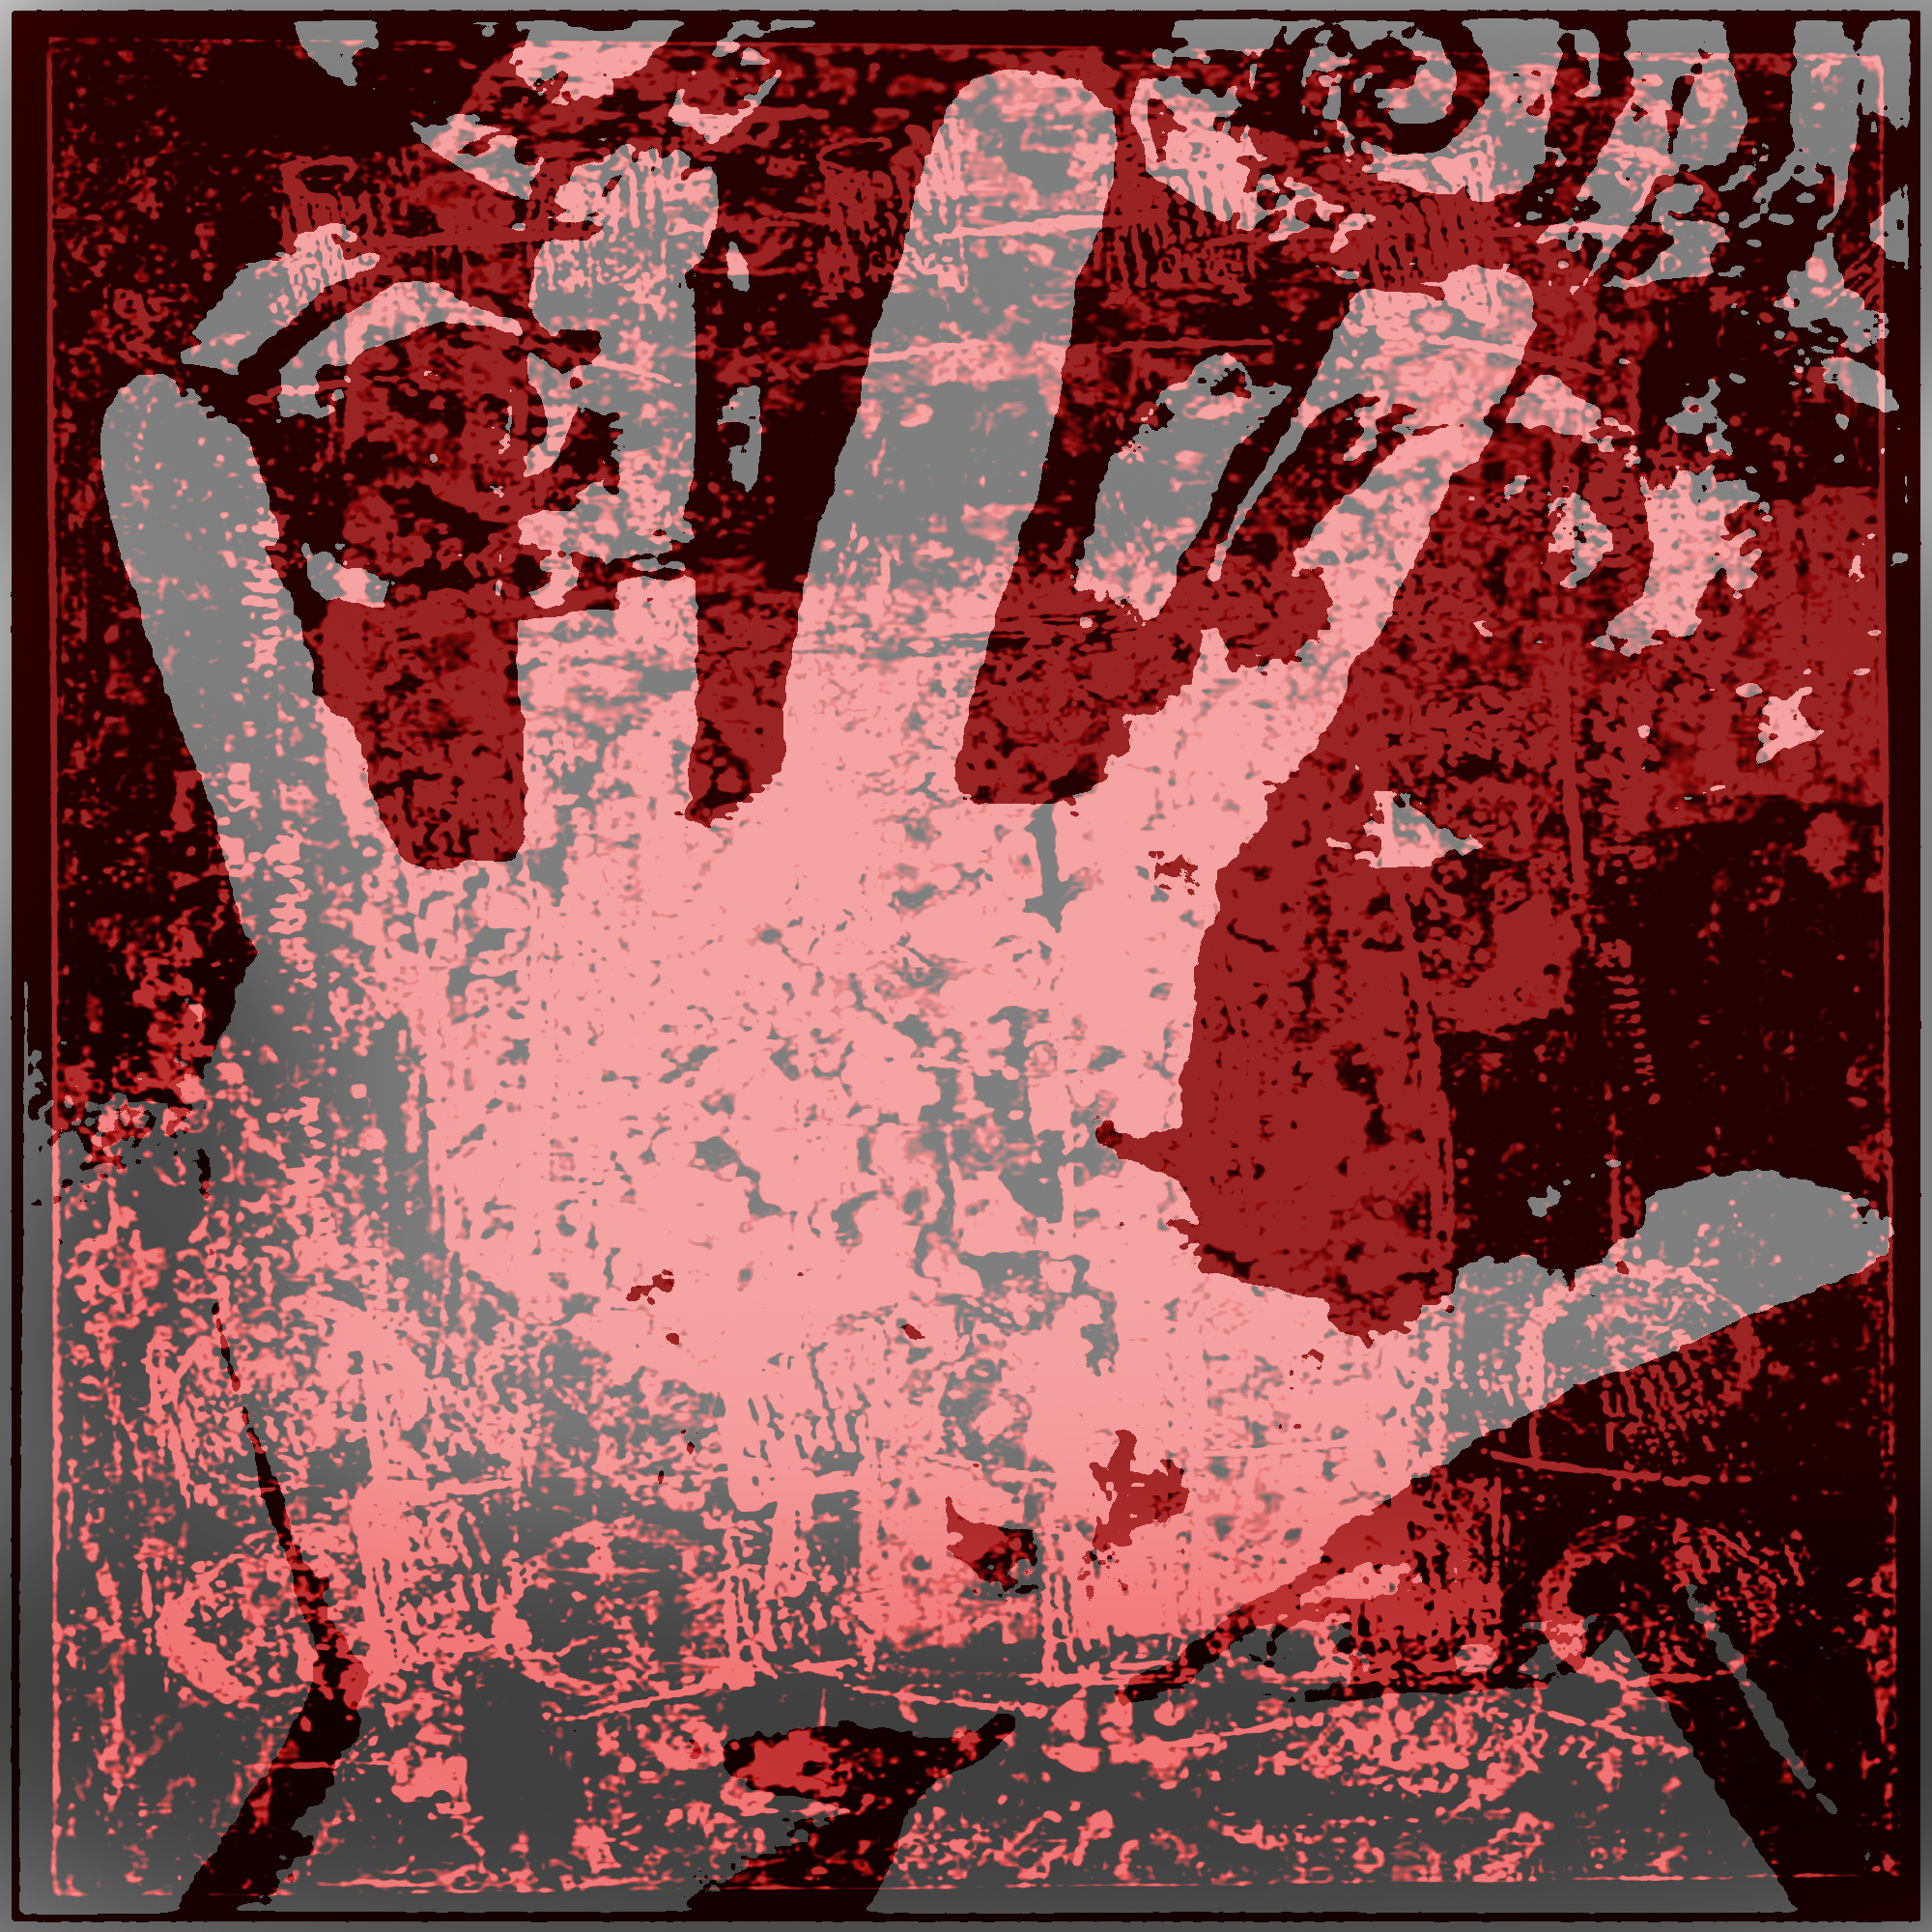 red hand by steev thompson